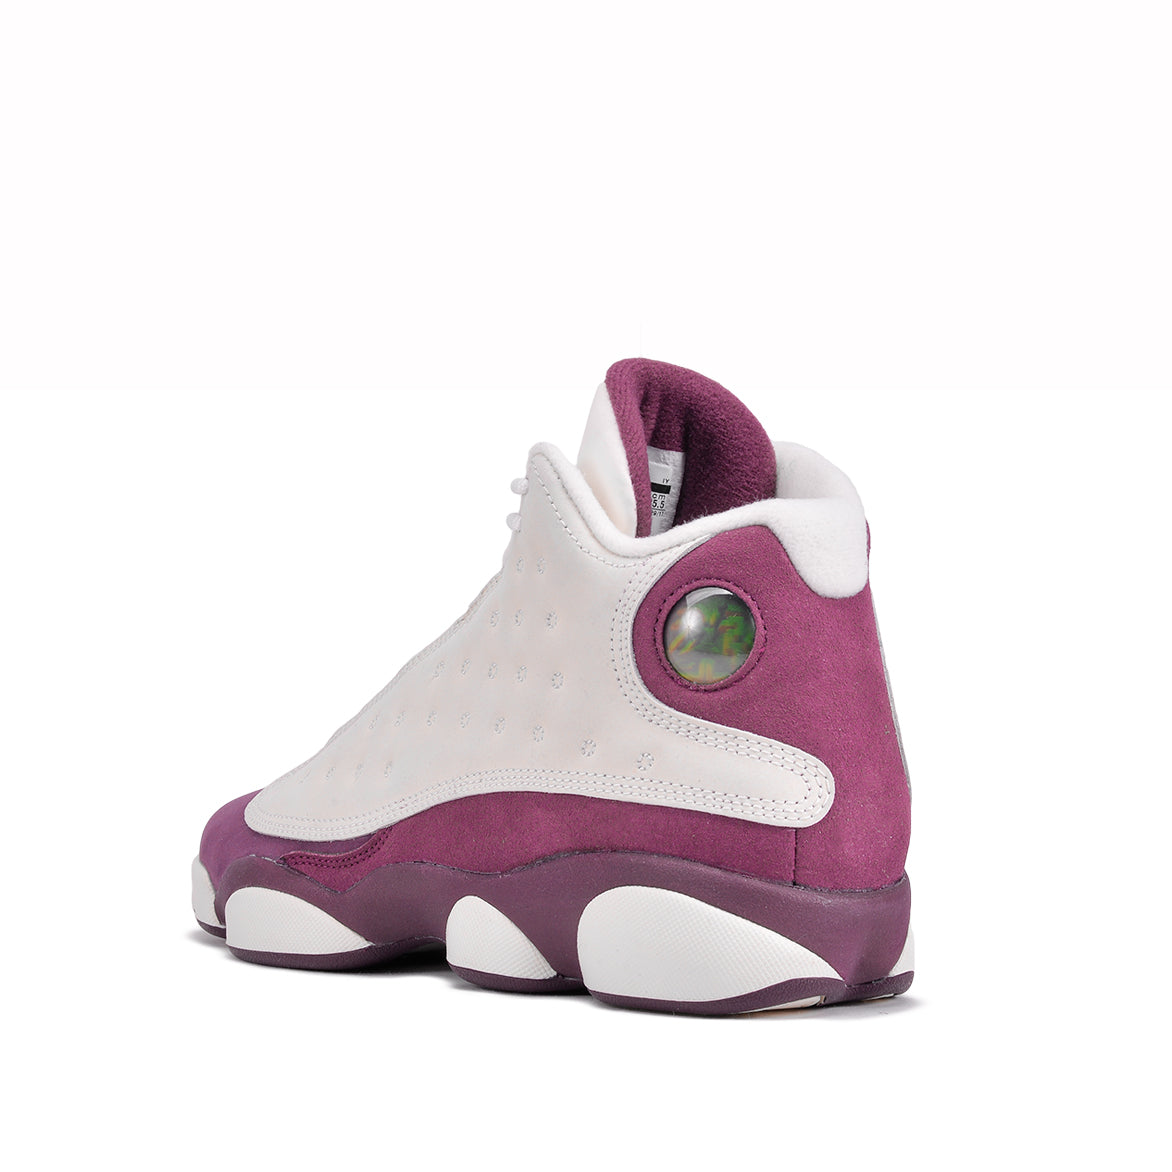 "AIR JORDAN 13 RETRO (GG) ""BORDEAUX"""